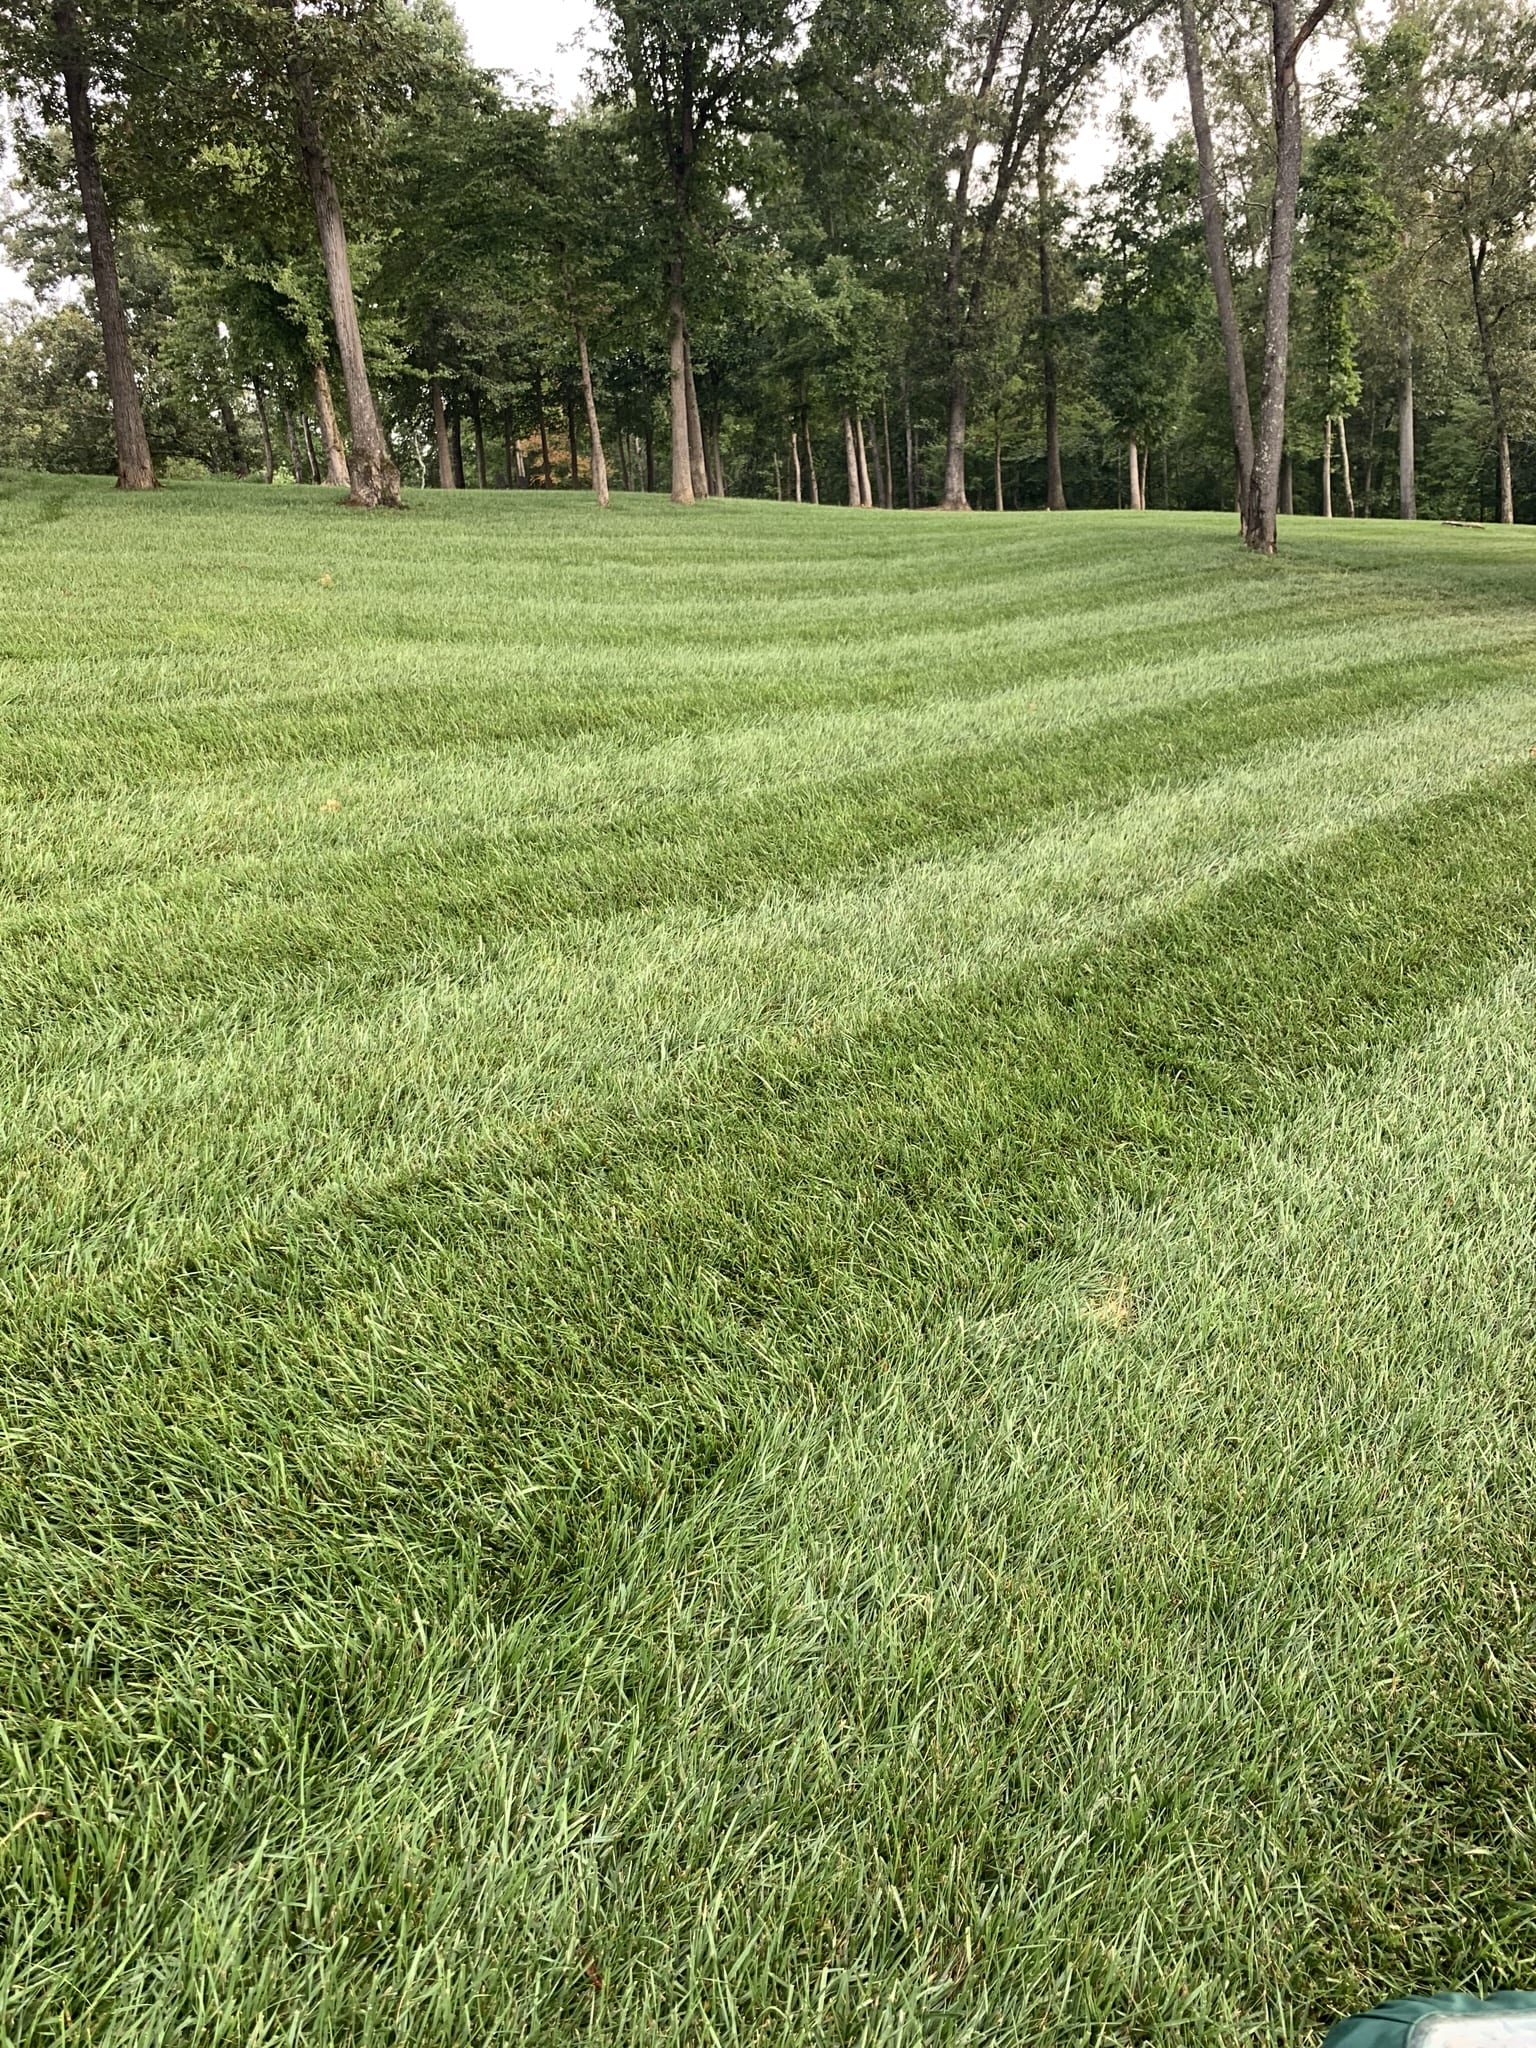 a large yard with cut lines after being mowed